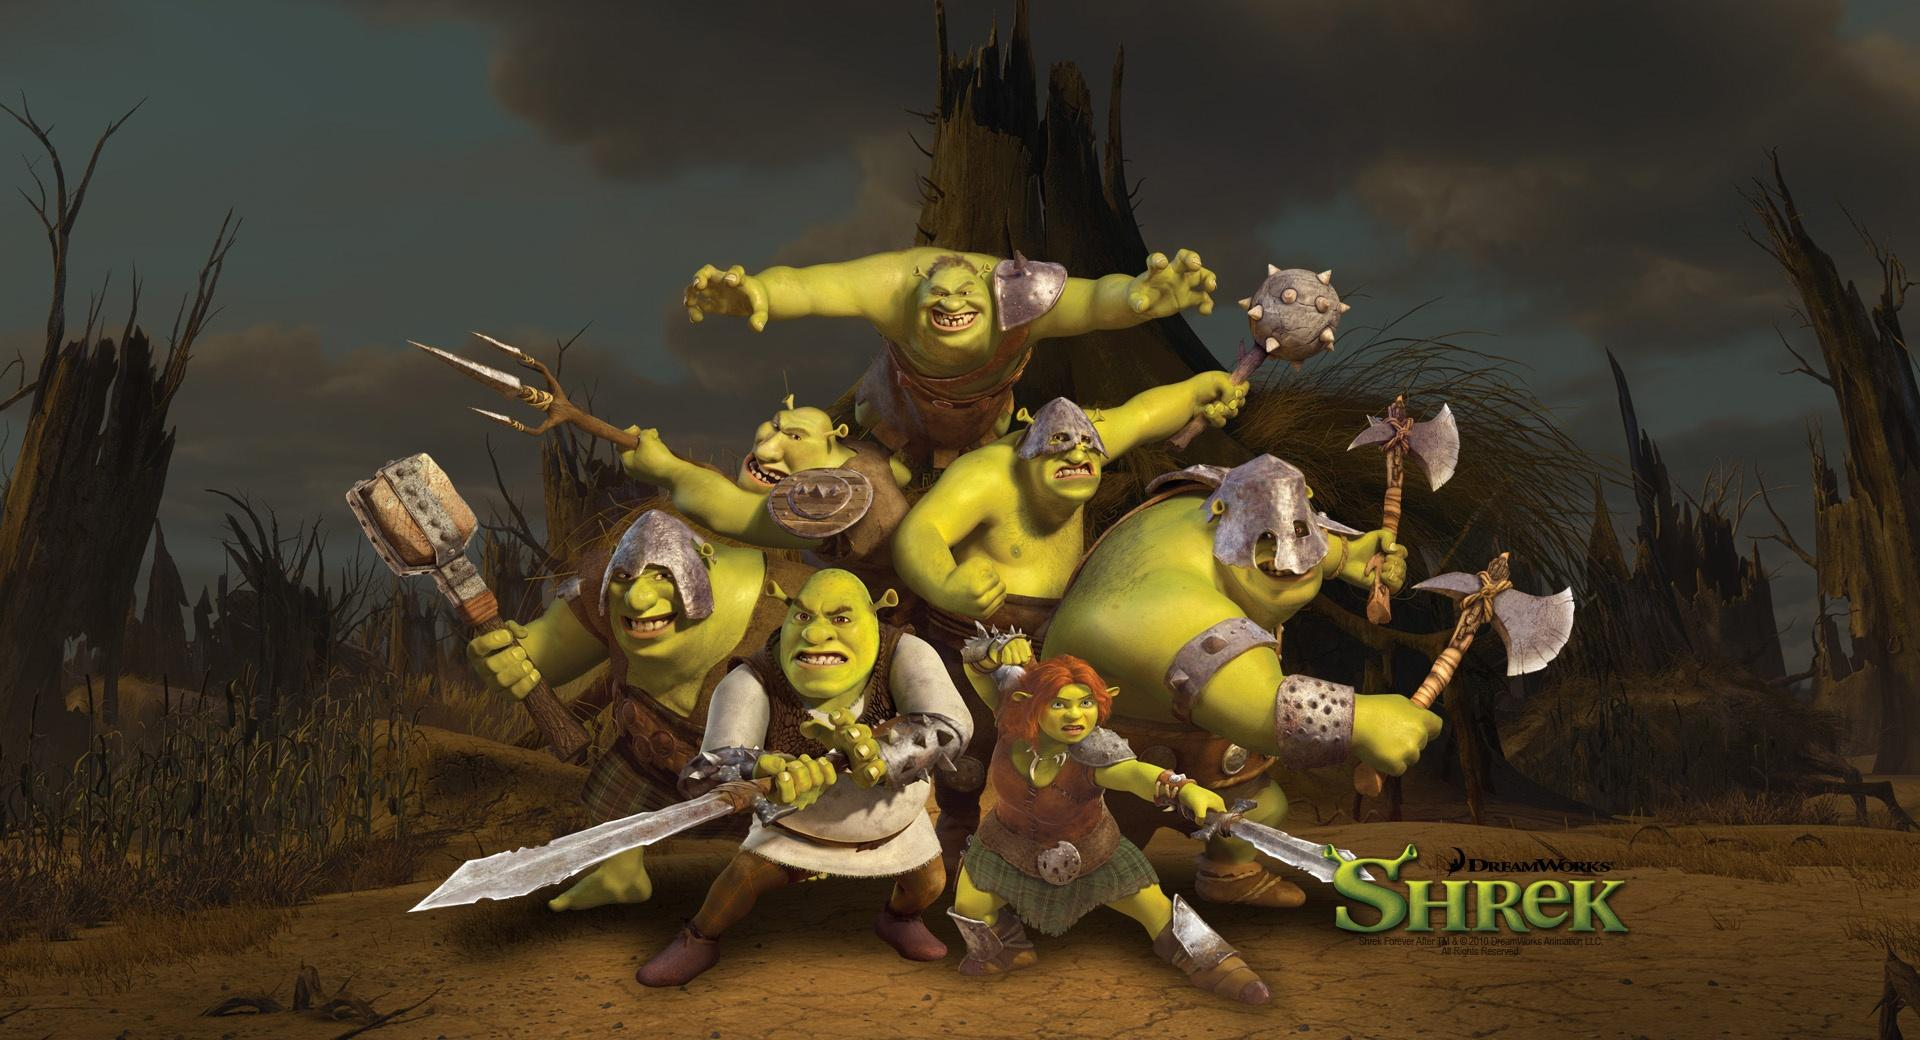 Ogres, Shrek The Final Chapter wallpapers HD quality